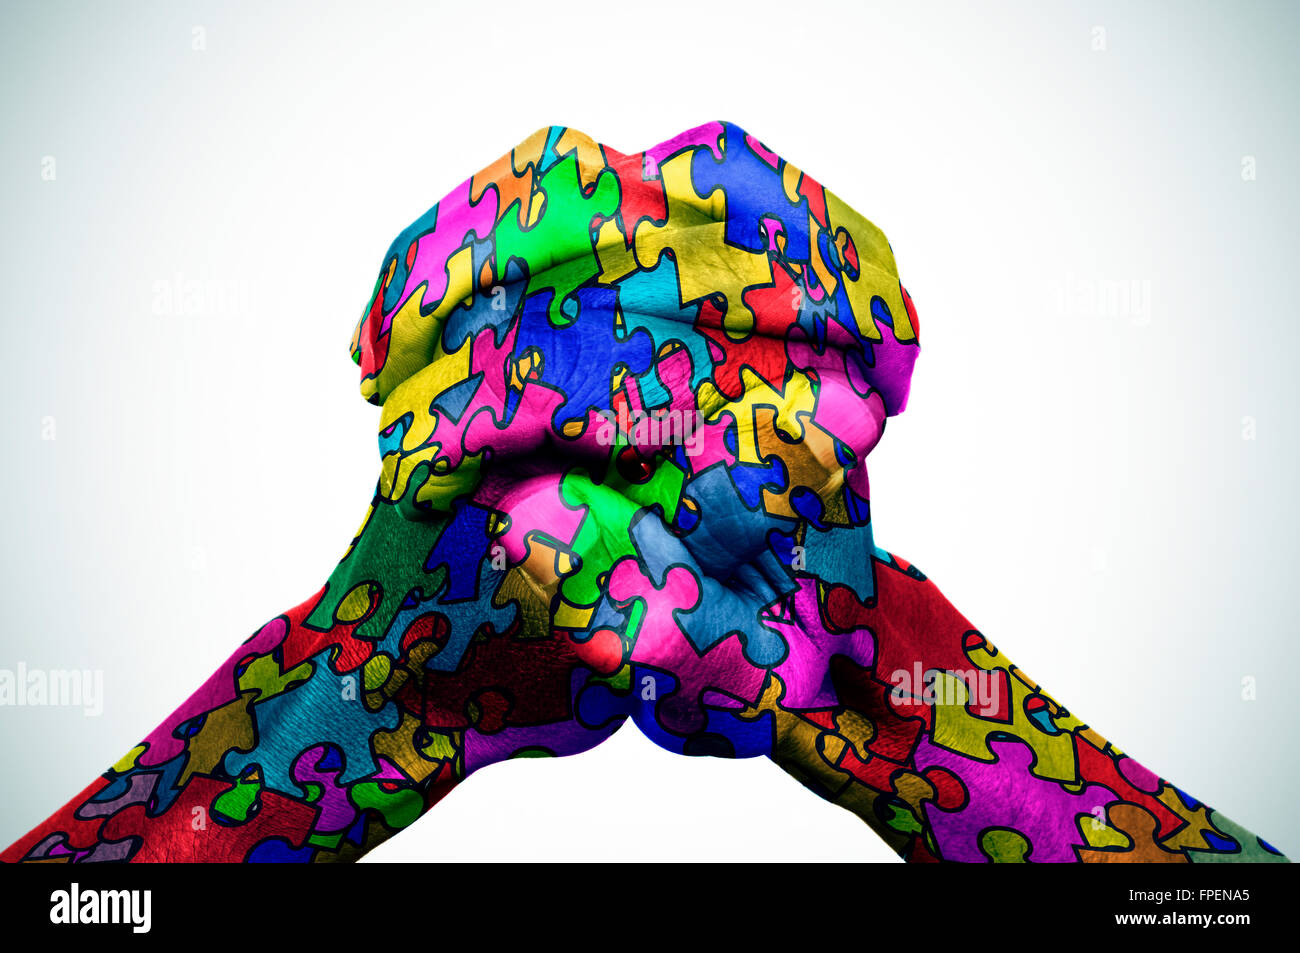 man hands put together patterned with many puzzle pieces of different colors, symbol of the autism awareness, with - Stock Image